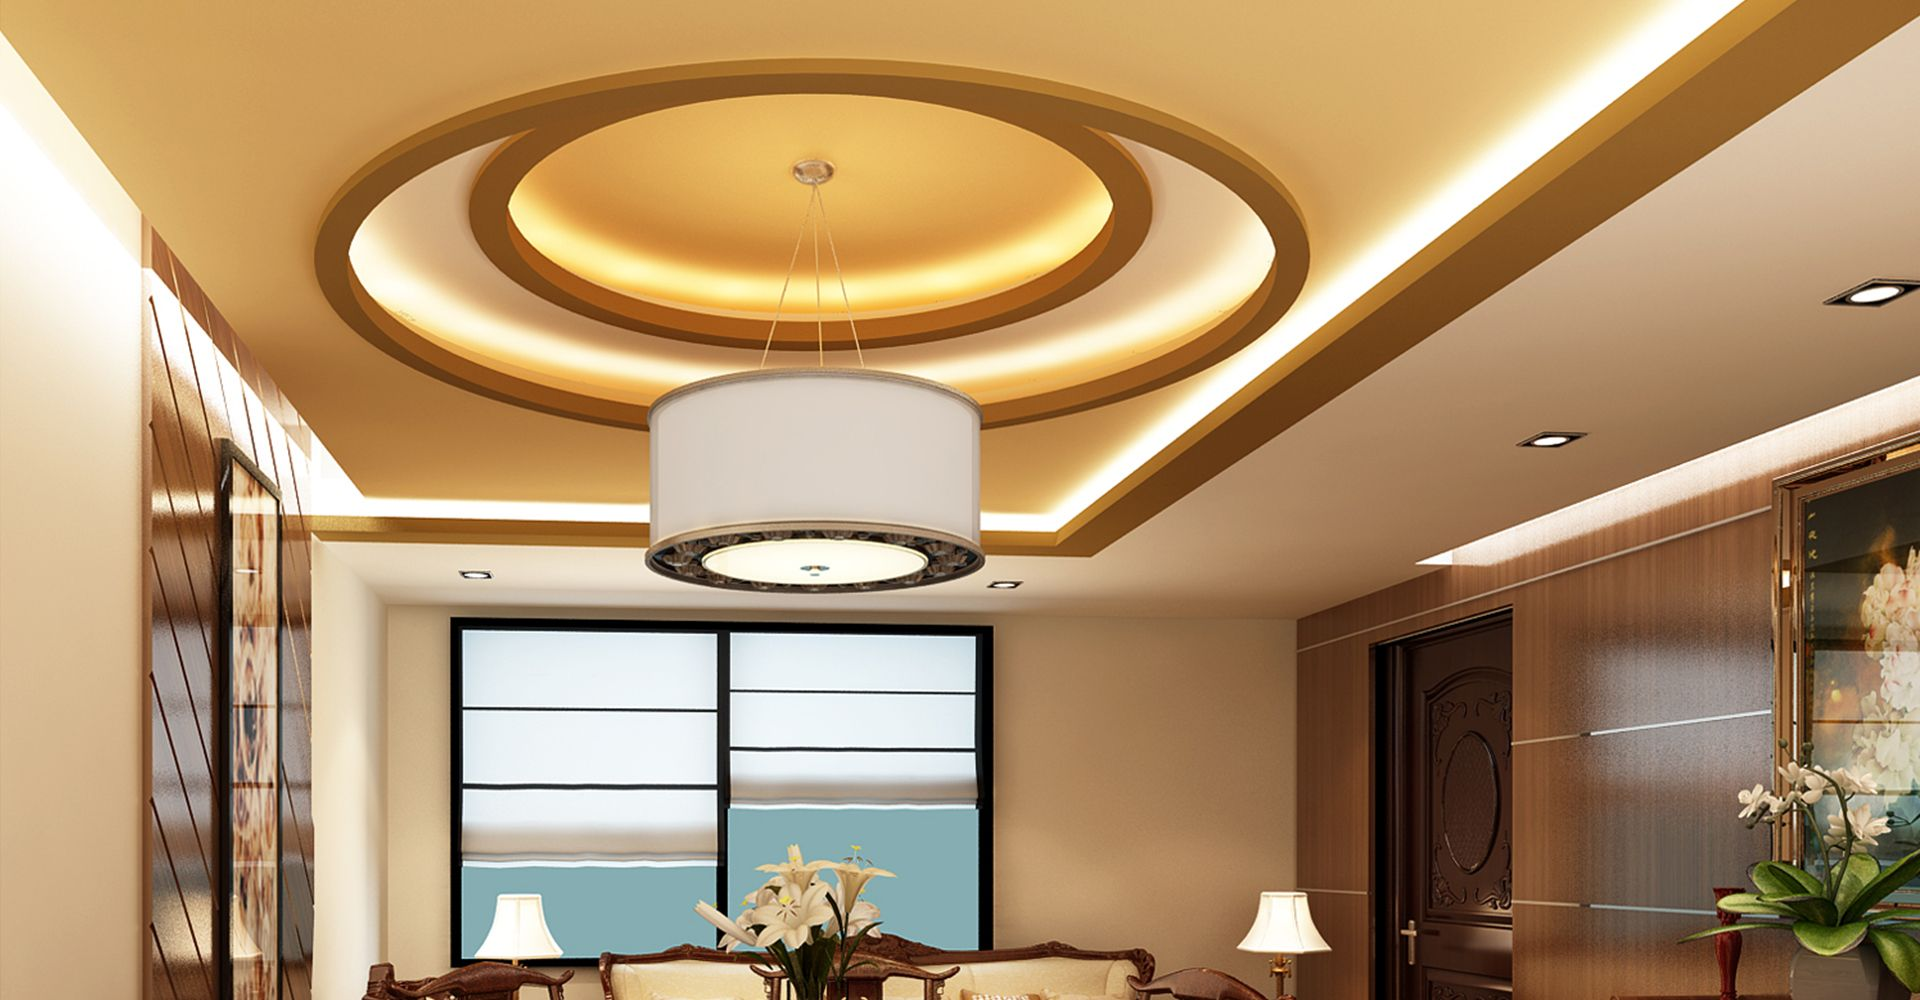 Saint Gobain Gyproc Offers An Innovative Residential Ceiling Design Ideas  For Various Room Such As Living